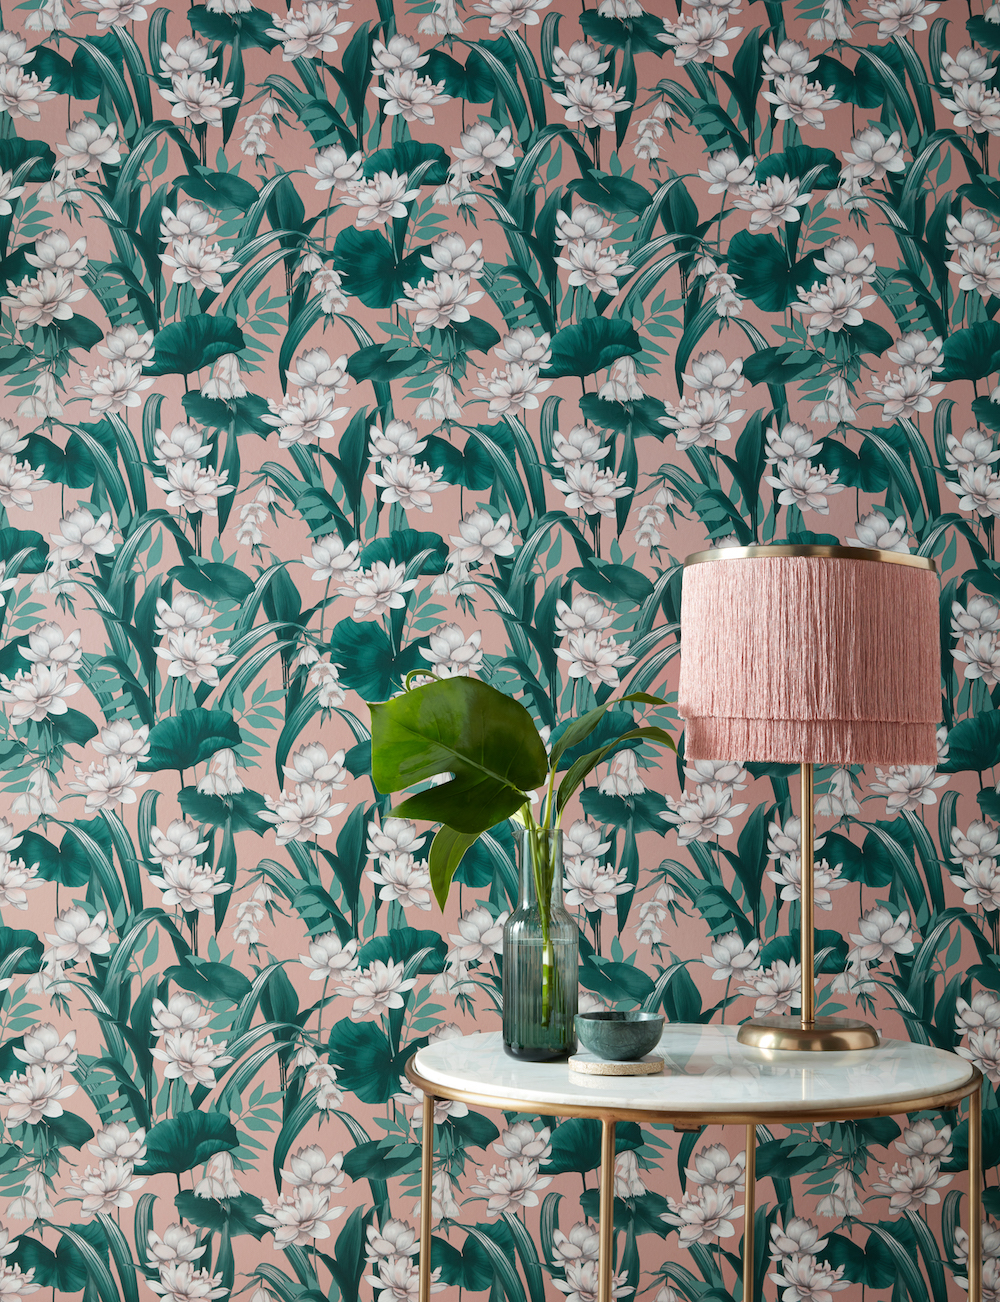 Accessorize Celeste Wallpaper - Blush Pink Glimmer